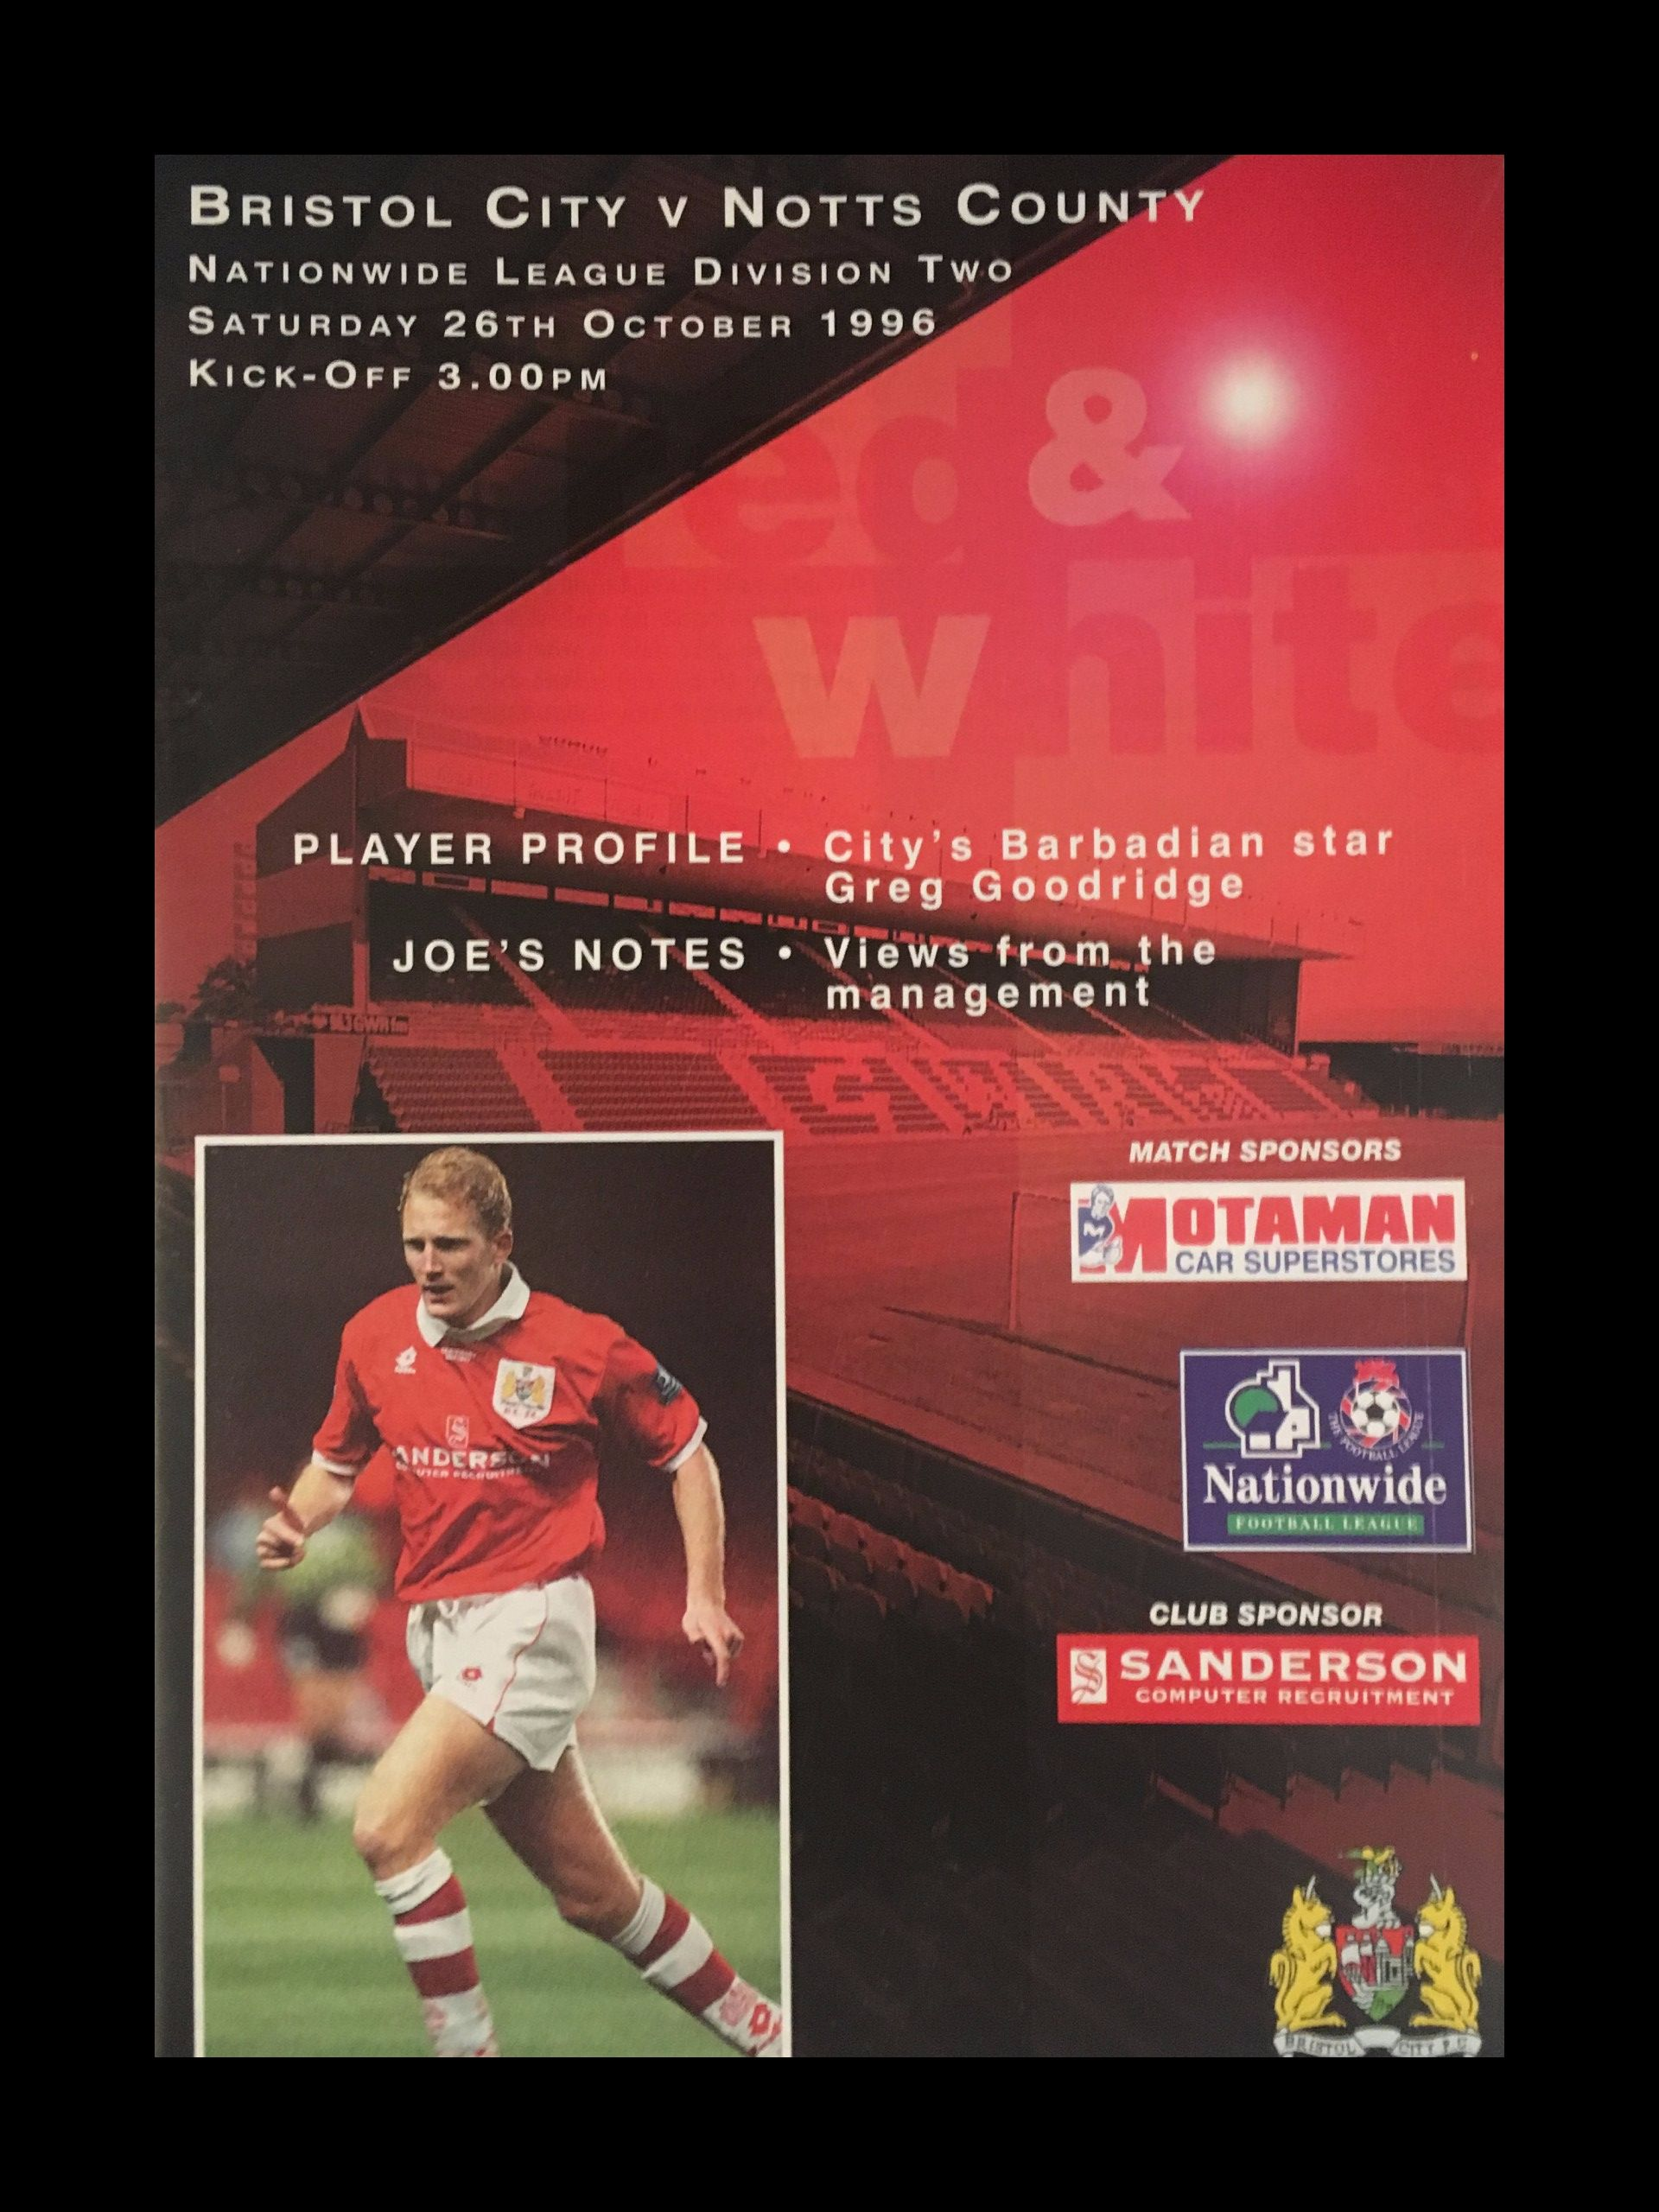 Bristol City v Notts County 26-10-1996 Programme